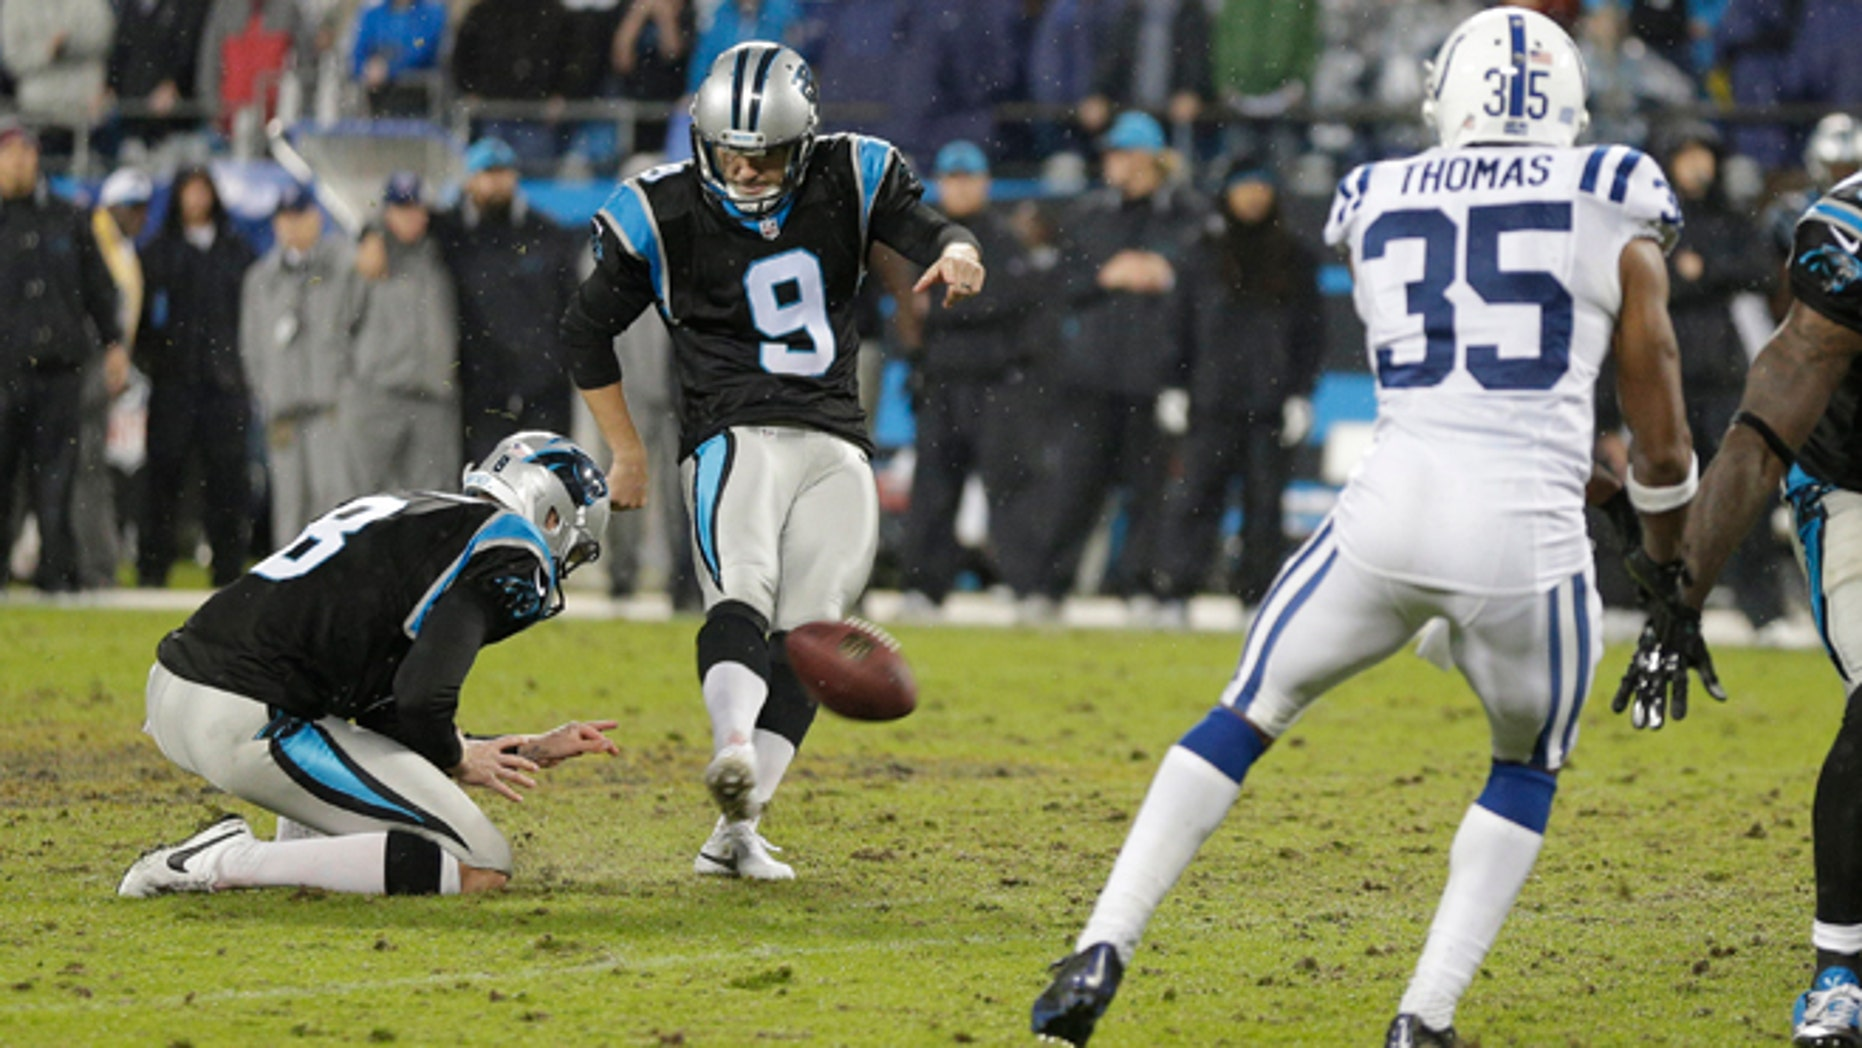 Carolina Panthers' Graham Gano (9) kicks the game-winning field goal in overtime against the Indianapolis Colts in an NFL football game in Charlotte, N.C., early Tuesday, Nov. 3, 2015. The Panthers won 29-26. (AP Photo/Chuck Burton)